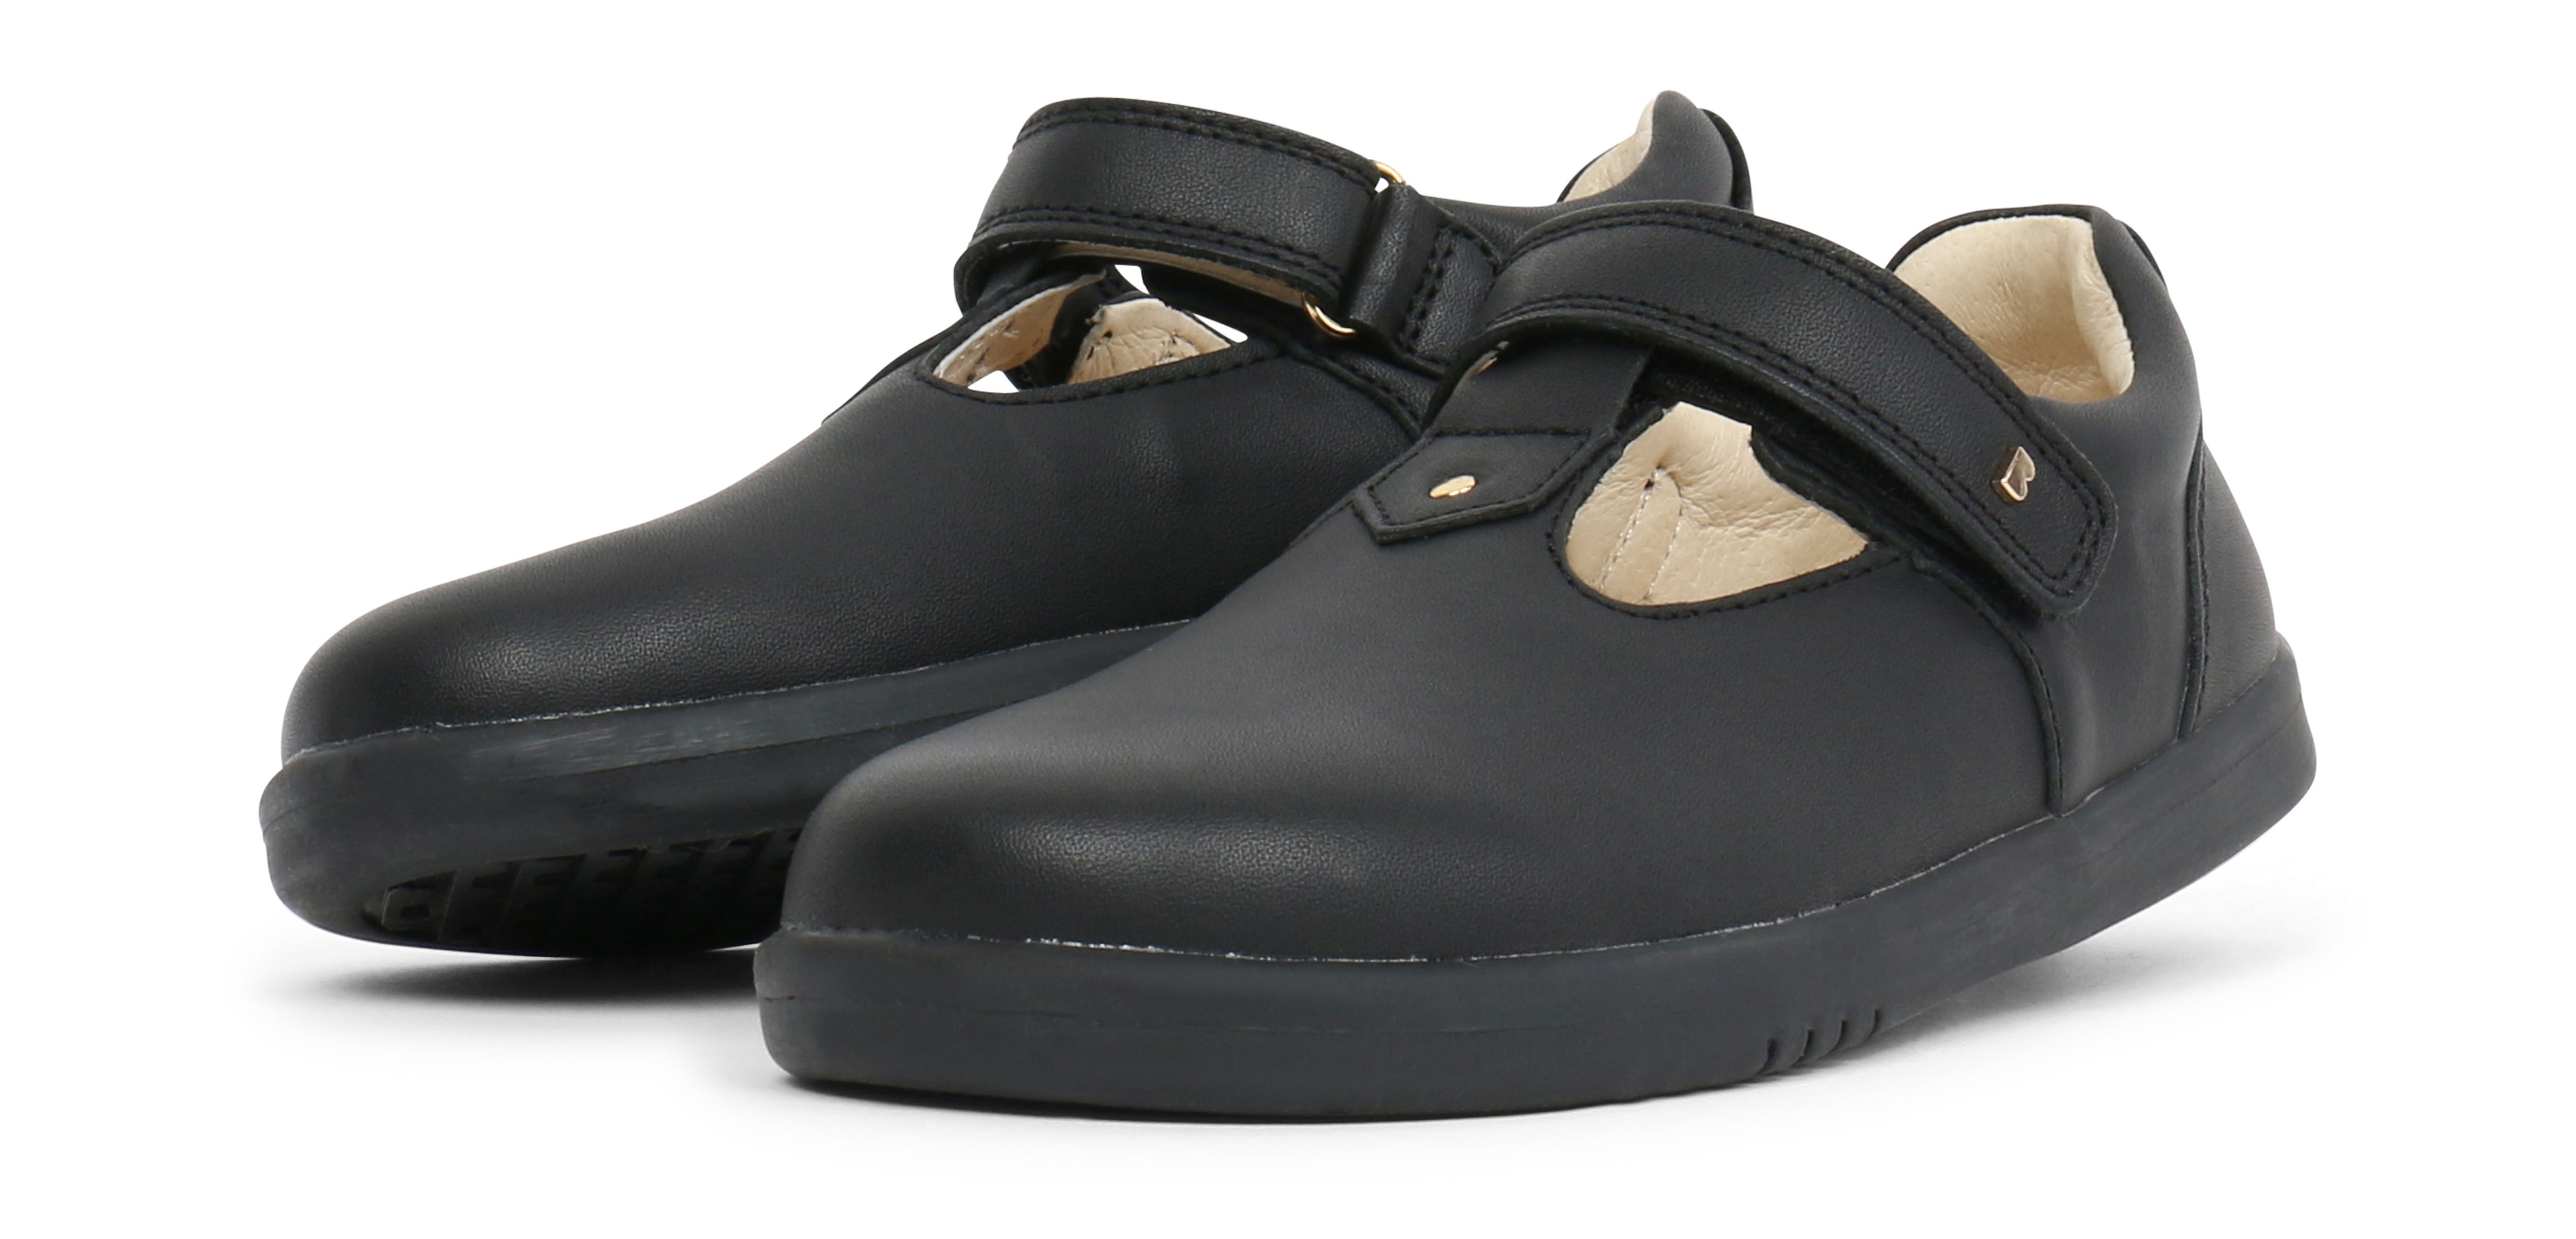 Kid+ Louise T-bar Shoe, from £46, Bobux